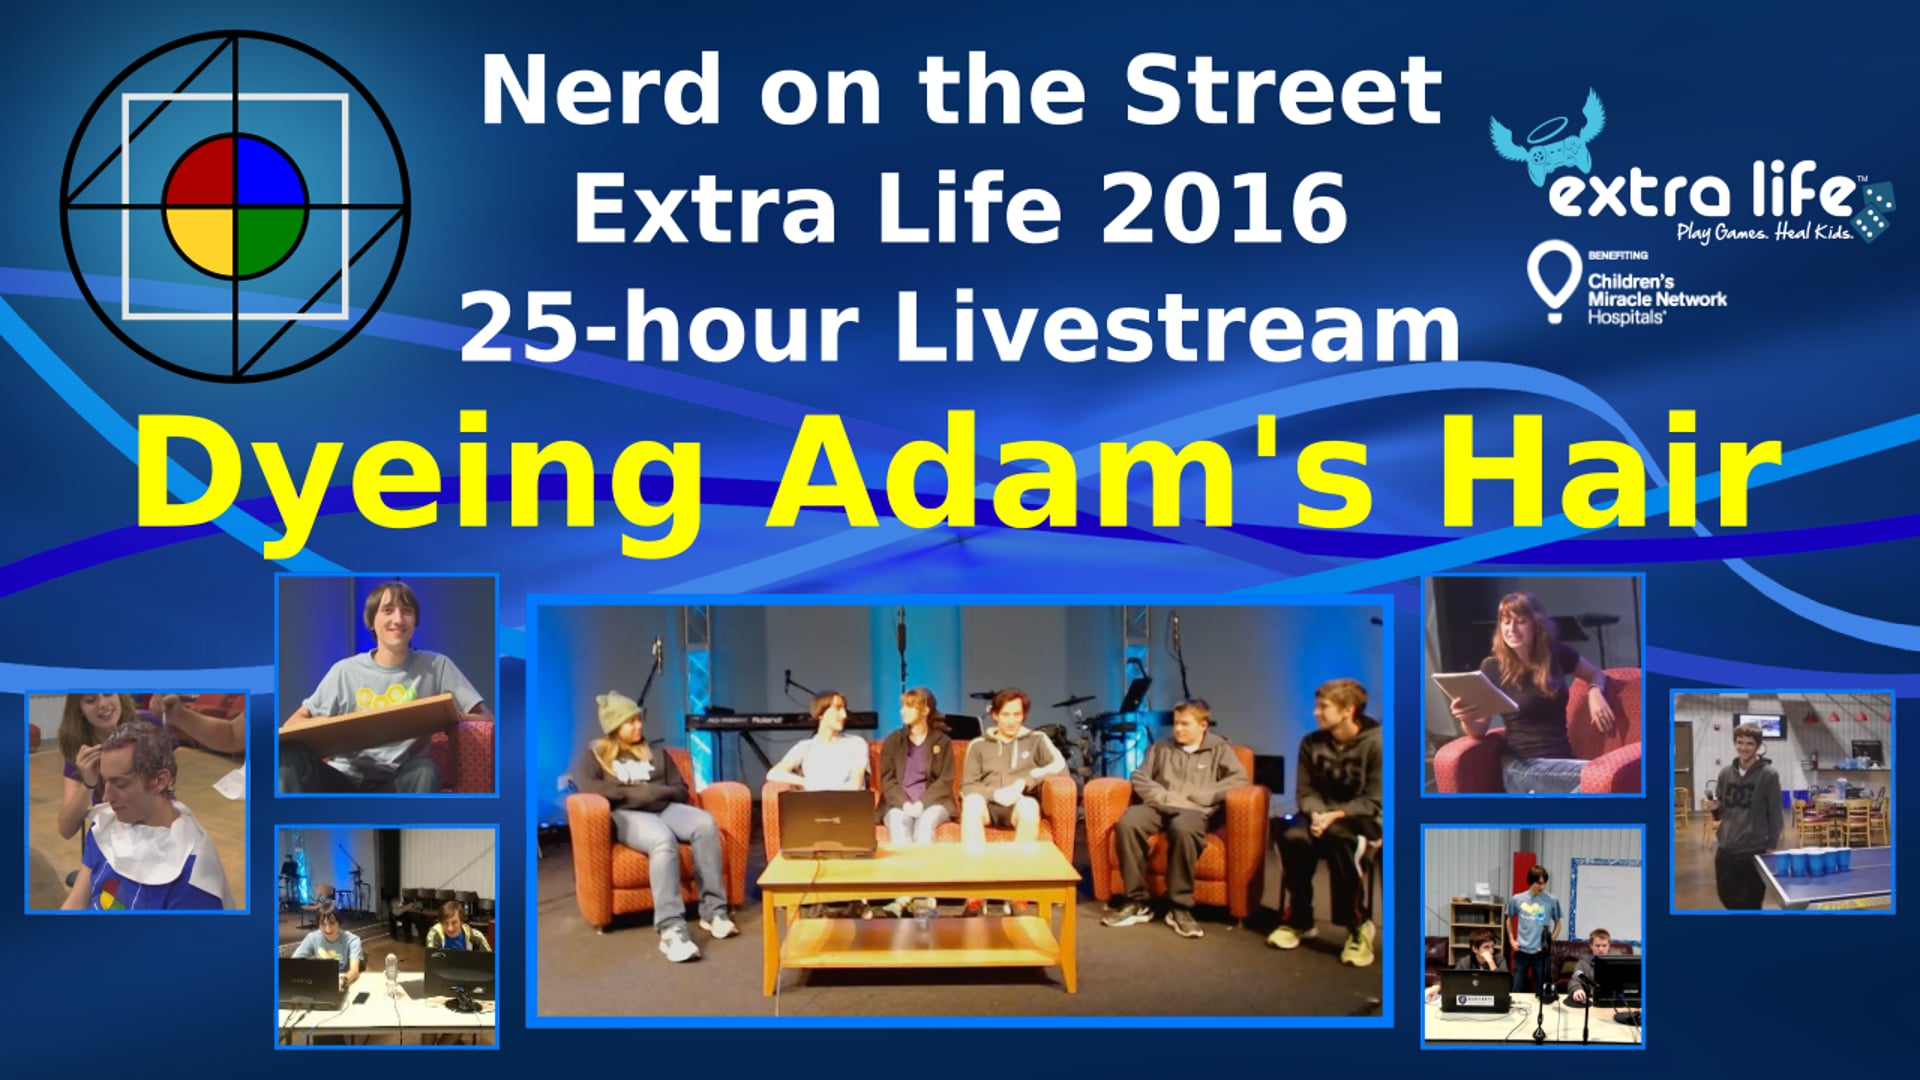 Dyeing Adam's Hair - Extra Life 2016